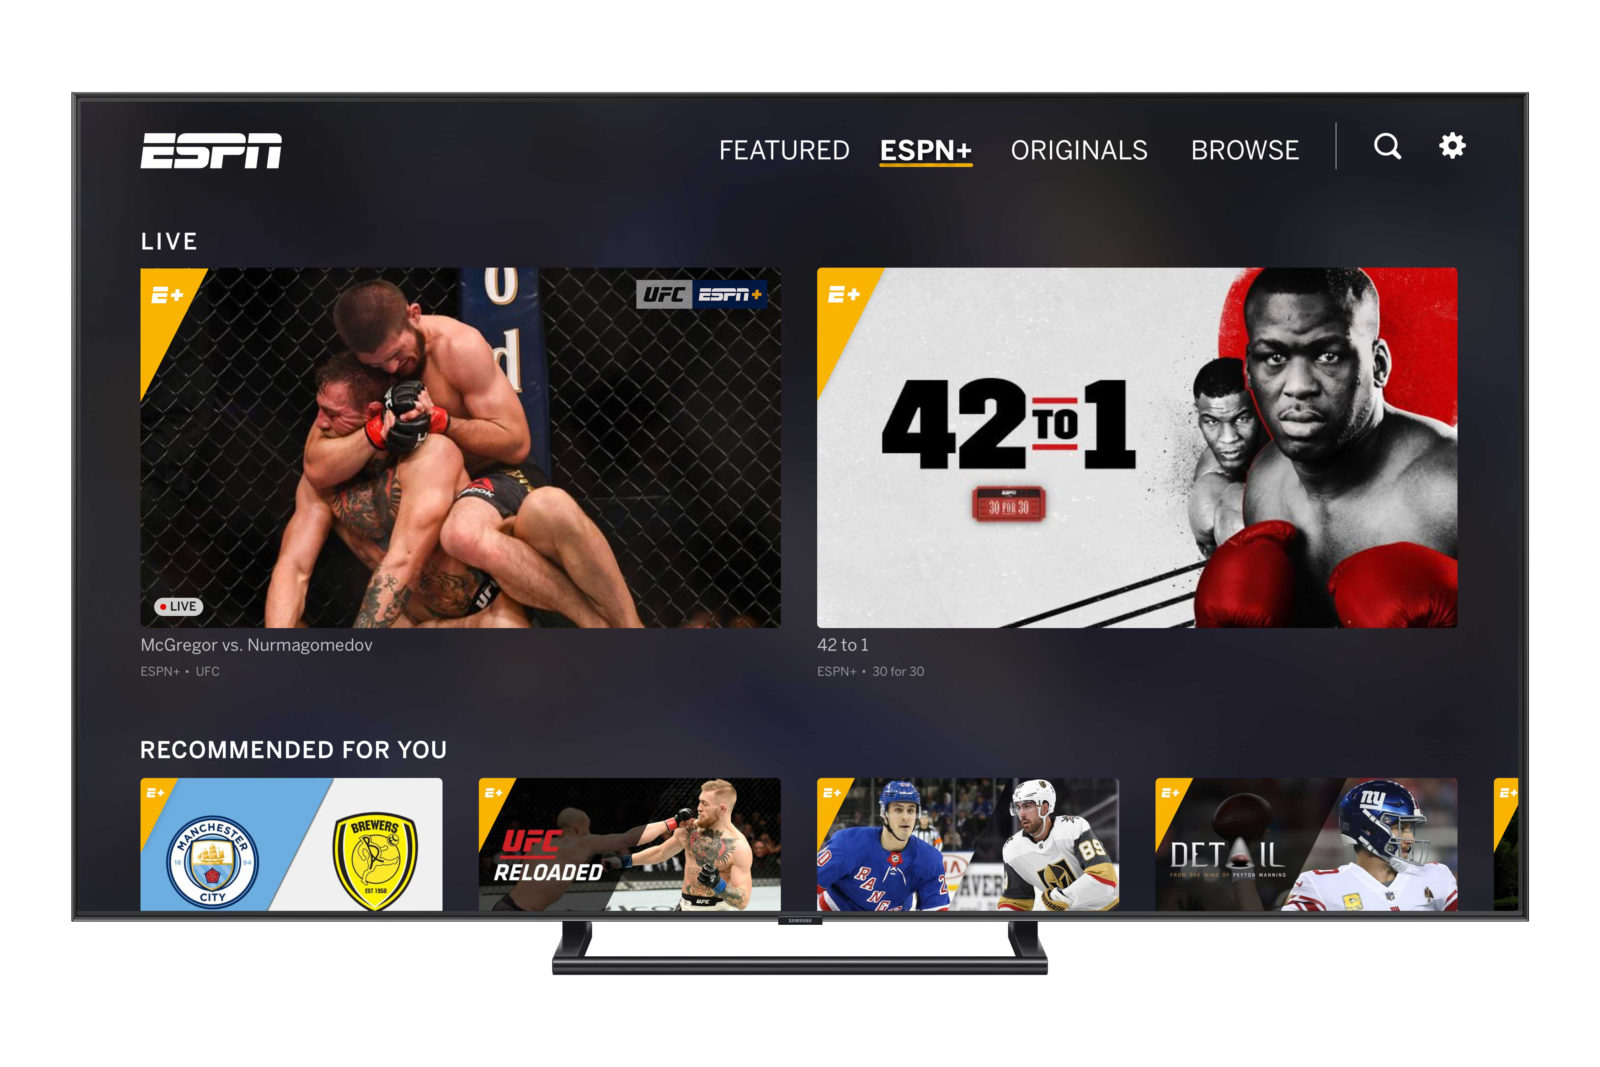 3 Things To Know About The Latest Enhancements to ESPN+ And The ESPN